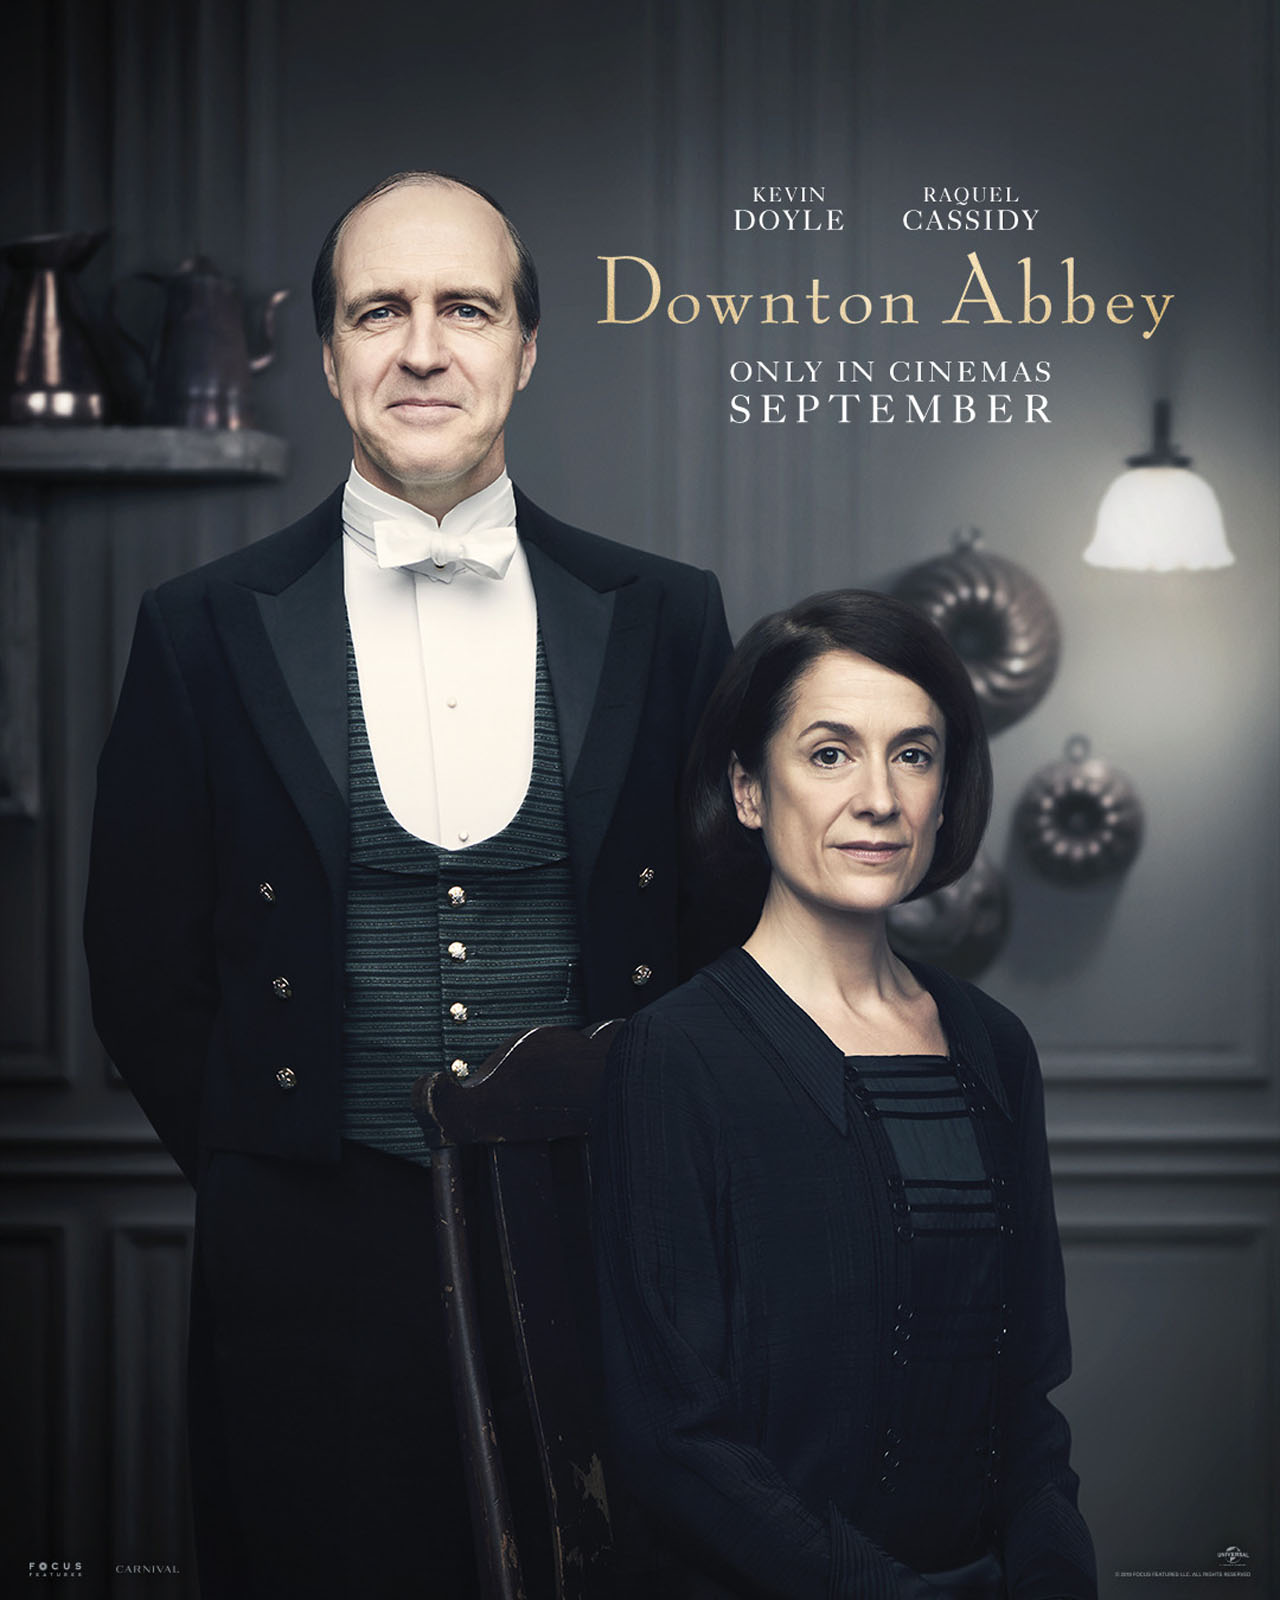 Downton Abbey The Movie Character Posters Joseph Molesley and Phyllis Baxter